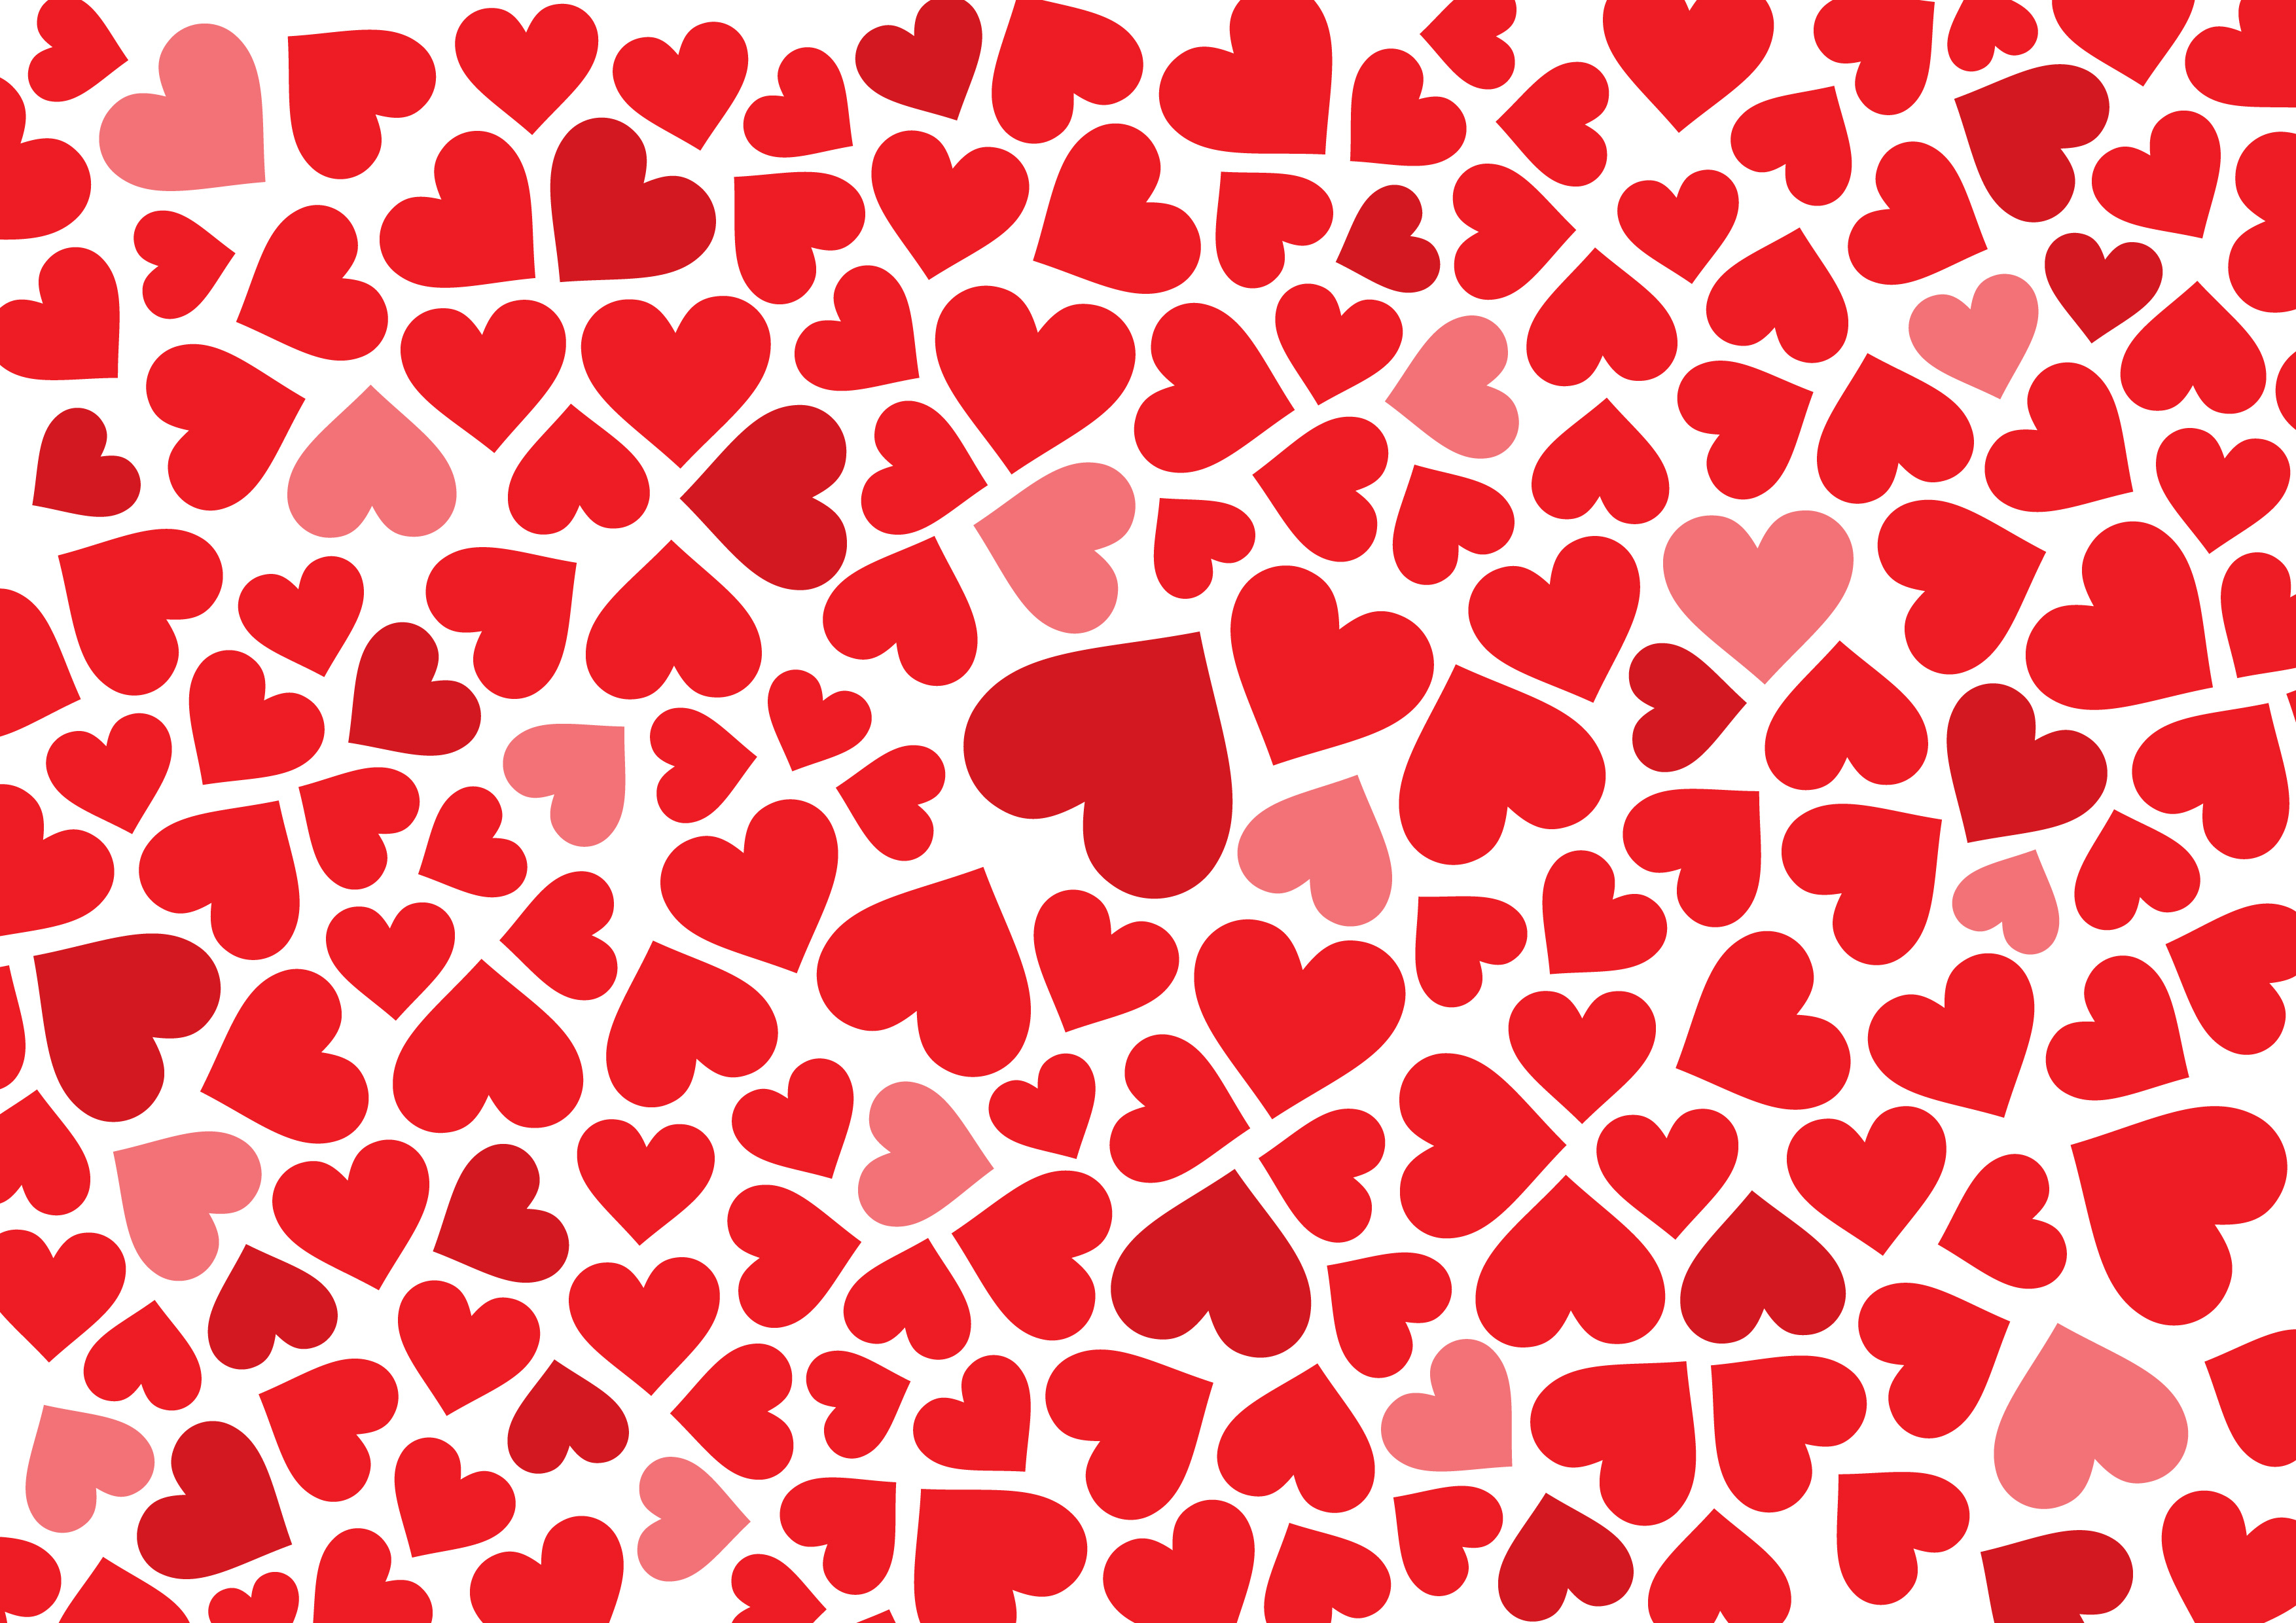 love heart hd live wallpaper